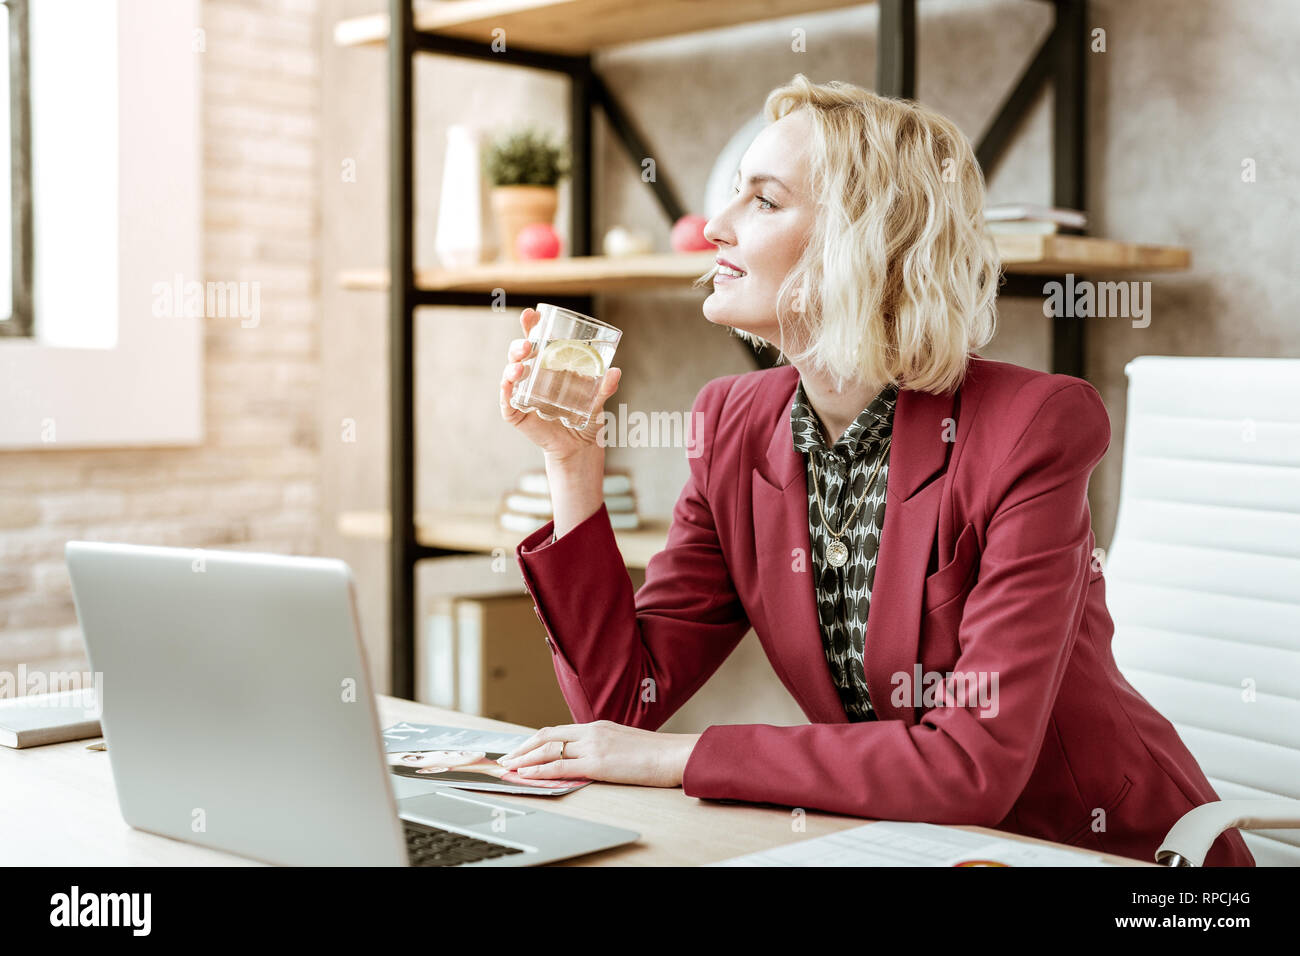 Curious appealing lady with wide smile quenching thirst with water Stock Photo